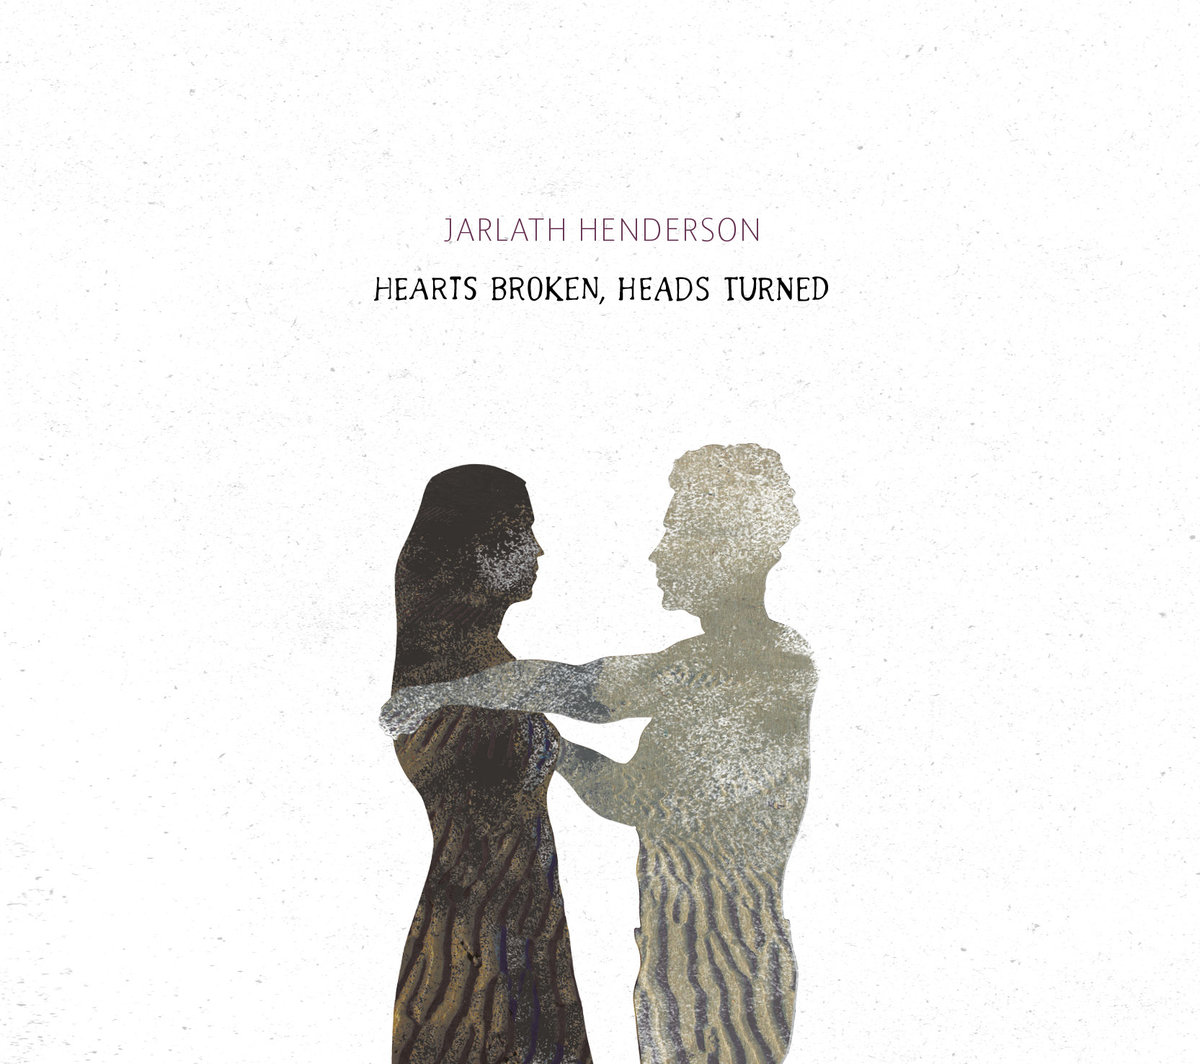 Jarlath Henderson - Hearts Broken, Heads Turned Cover